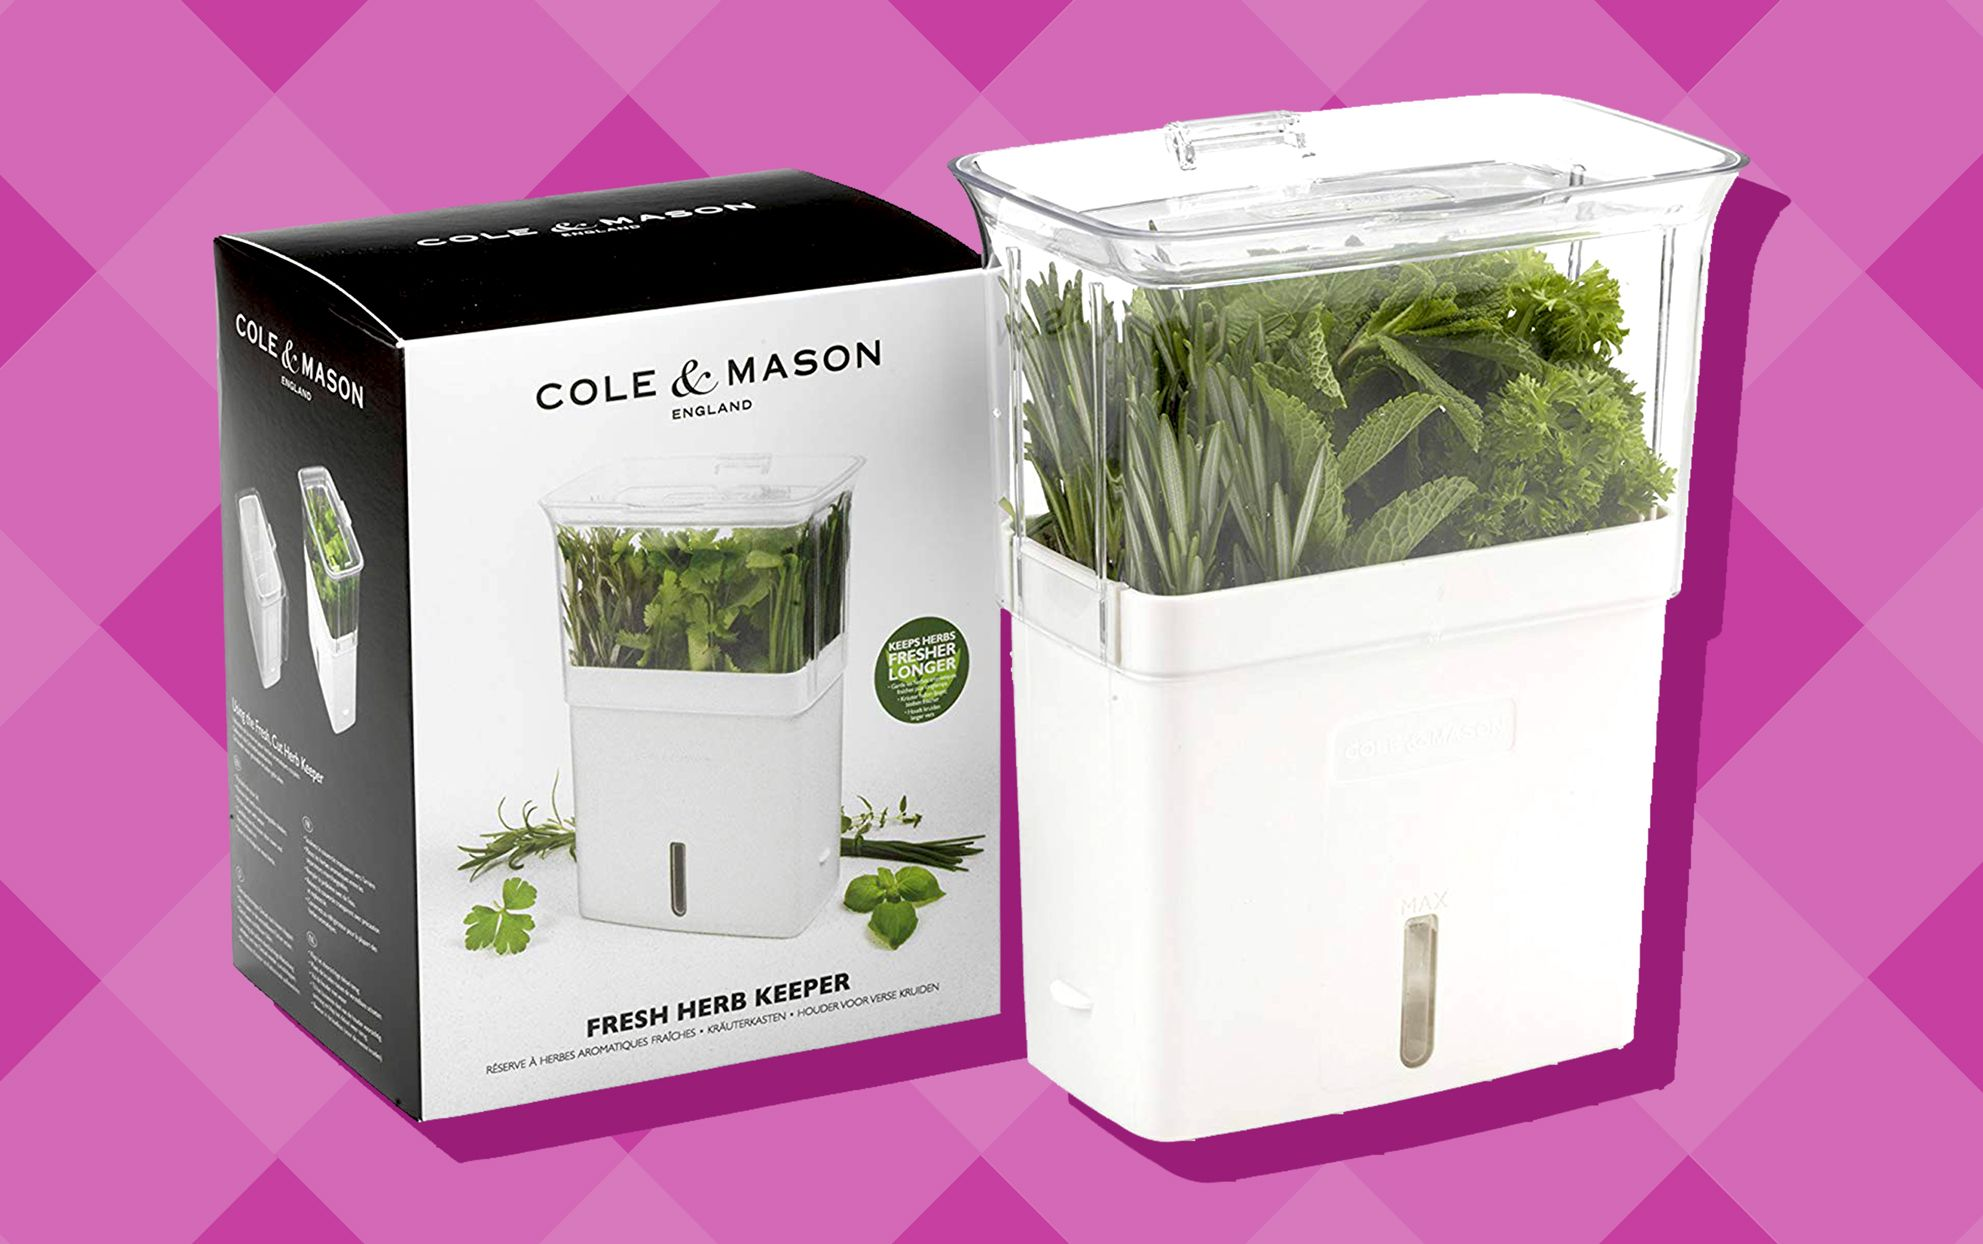 You Can Keep Your Herbs Fresh for Days With This Self-Watering Container #selfwatering